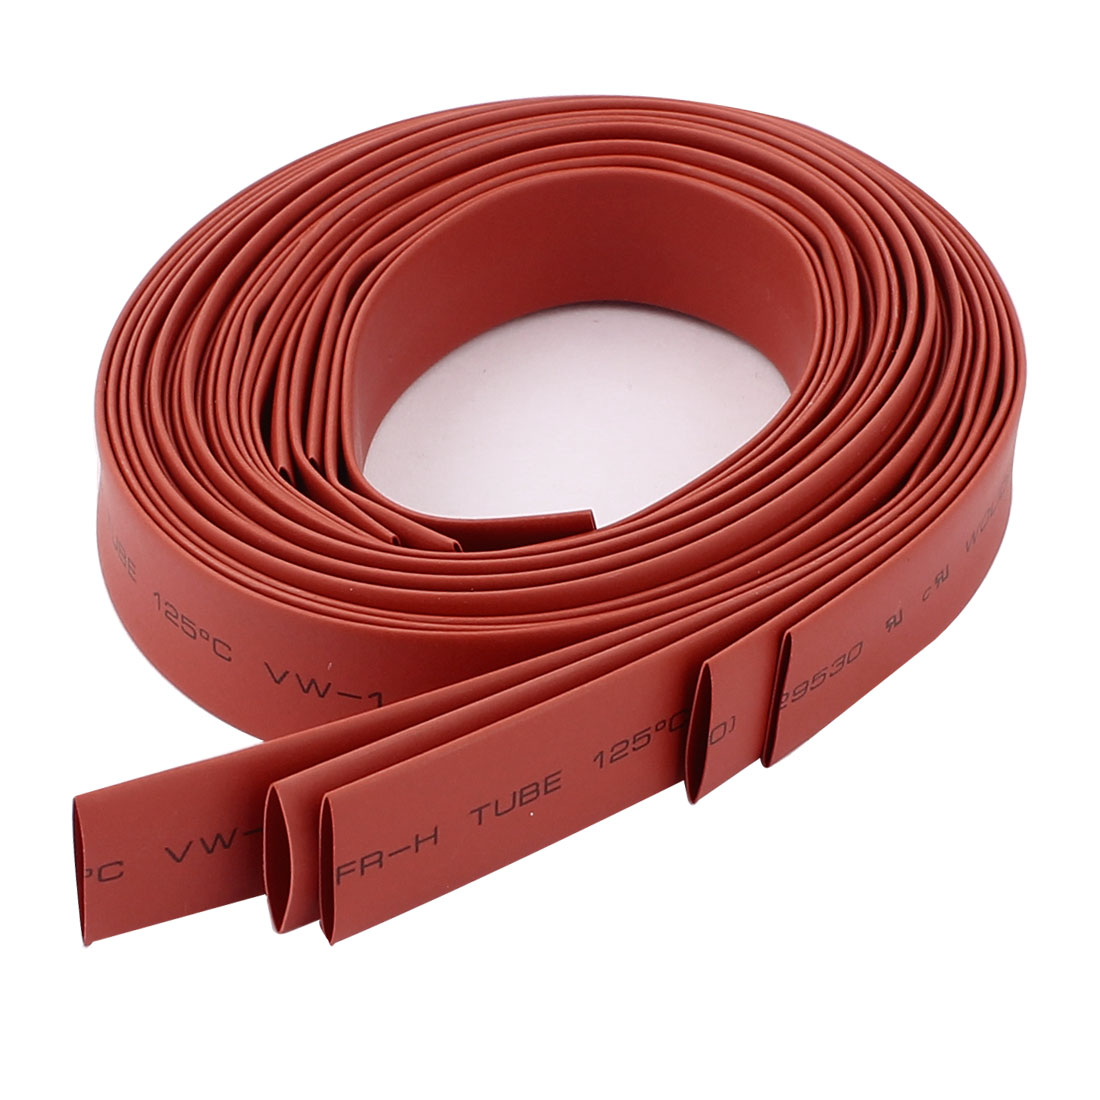 5pcs 10mm Dia 1M 2:1 Polyolefin Heat Shrink Tubing Wire Wrap Cable Sleeve Red